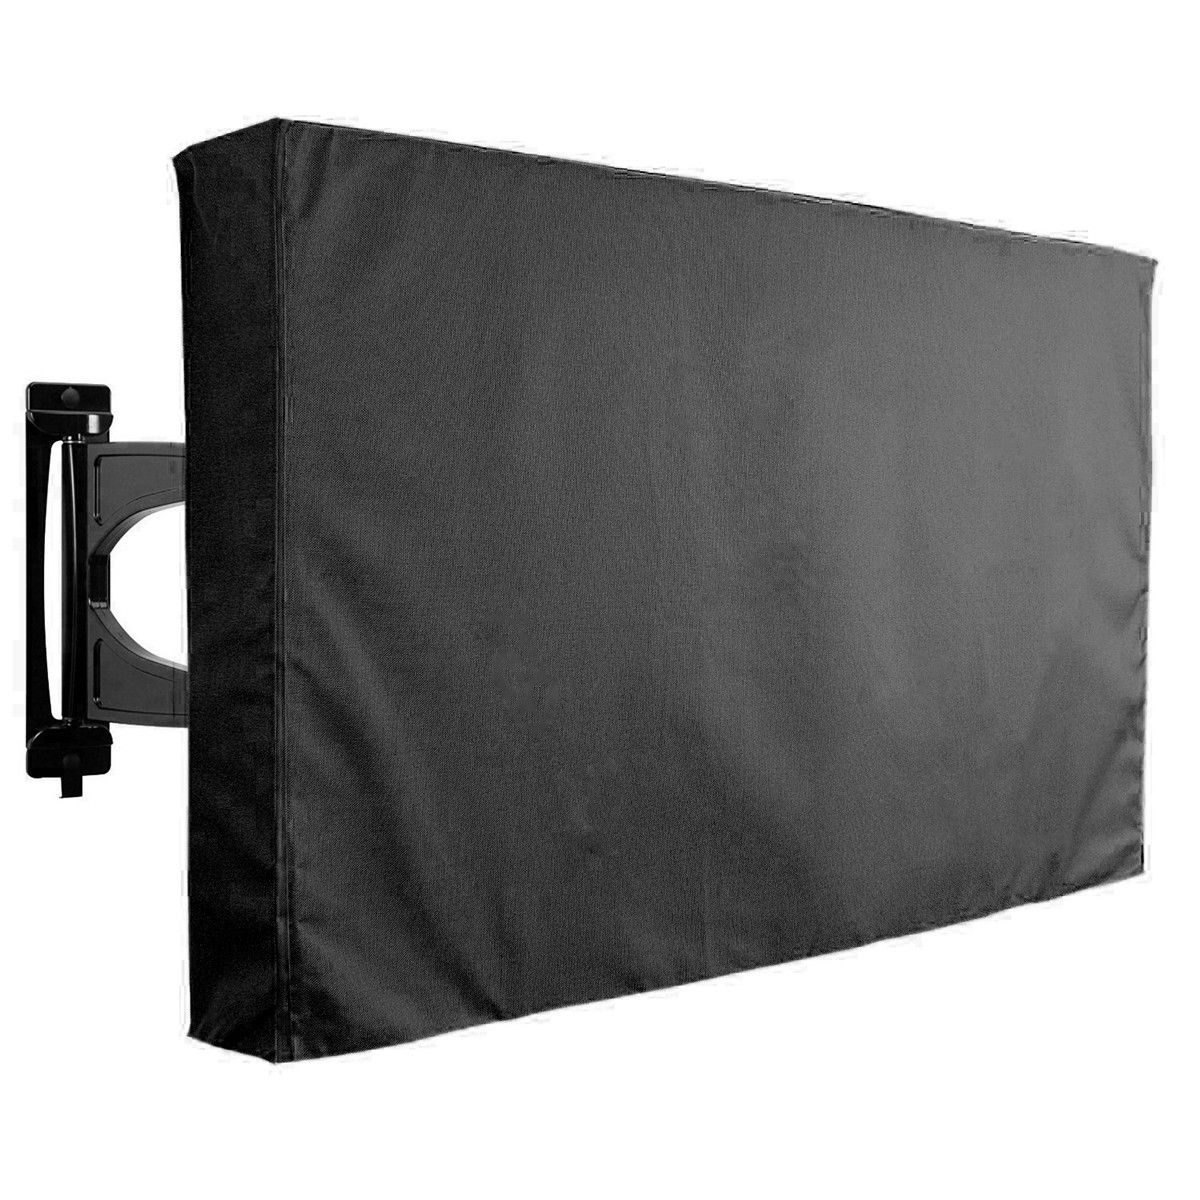 30 32 Inch Black Tv Cover Outdooors Patio Wall Mount Flat Protector Waterproof